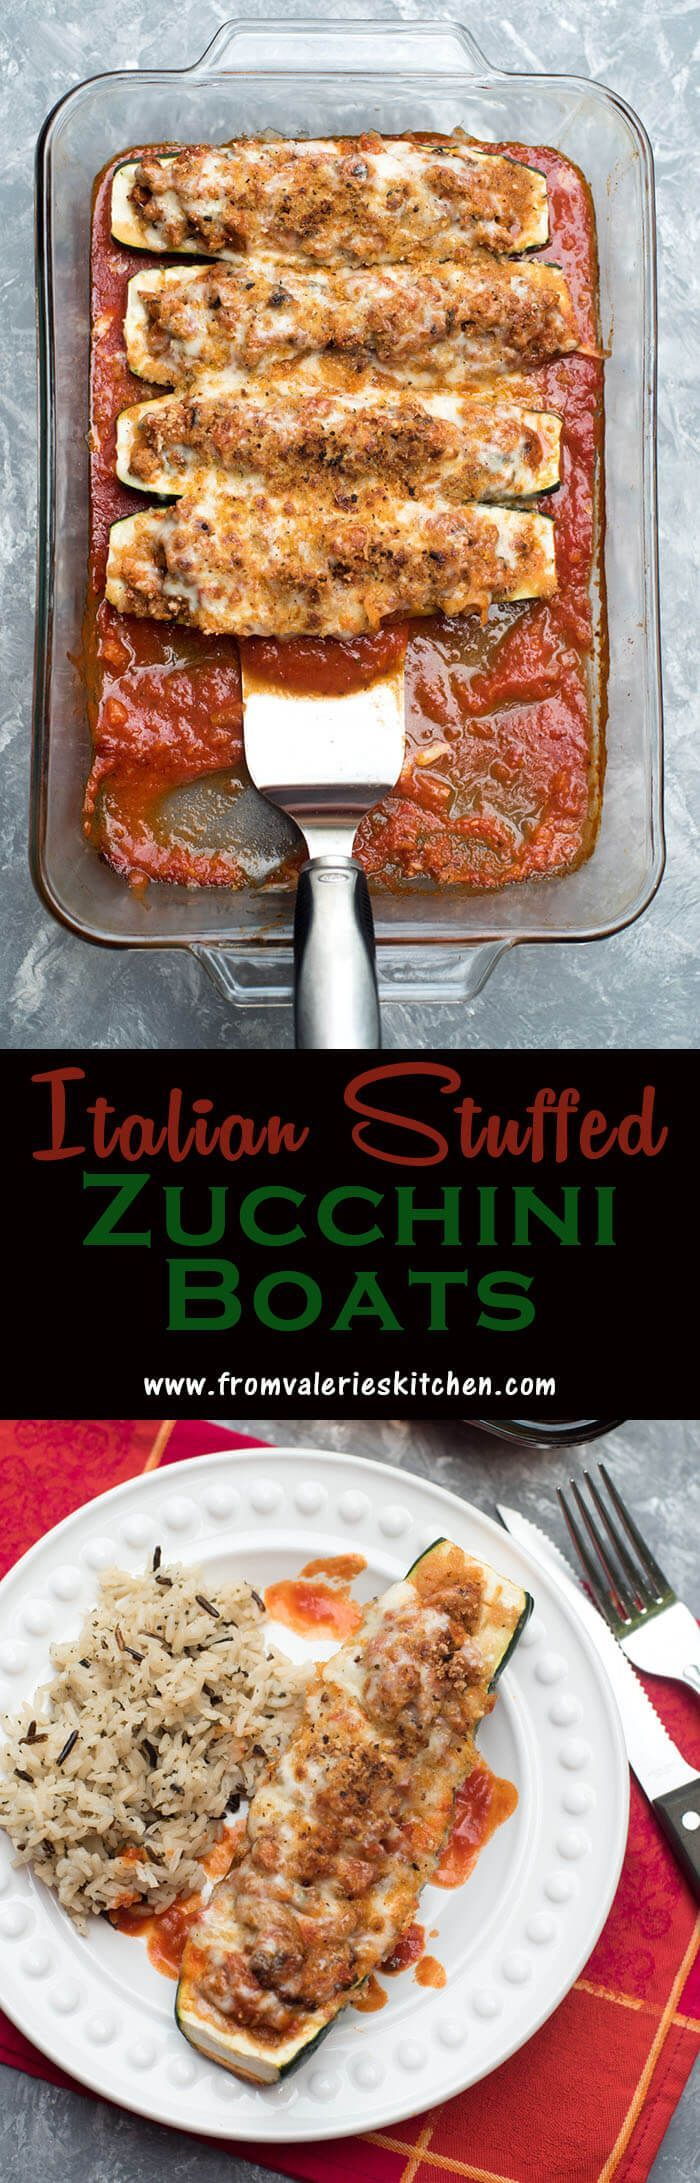 Italian Stuffed Zucchini Boats ~ low carb yet delicious! W/out the pasta. http://www.fromvalerieskitchen.com